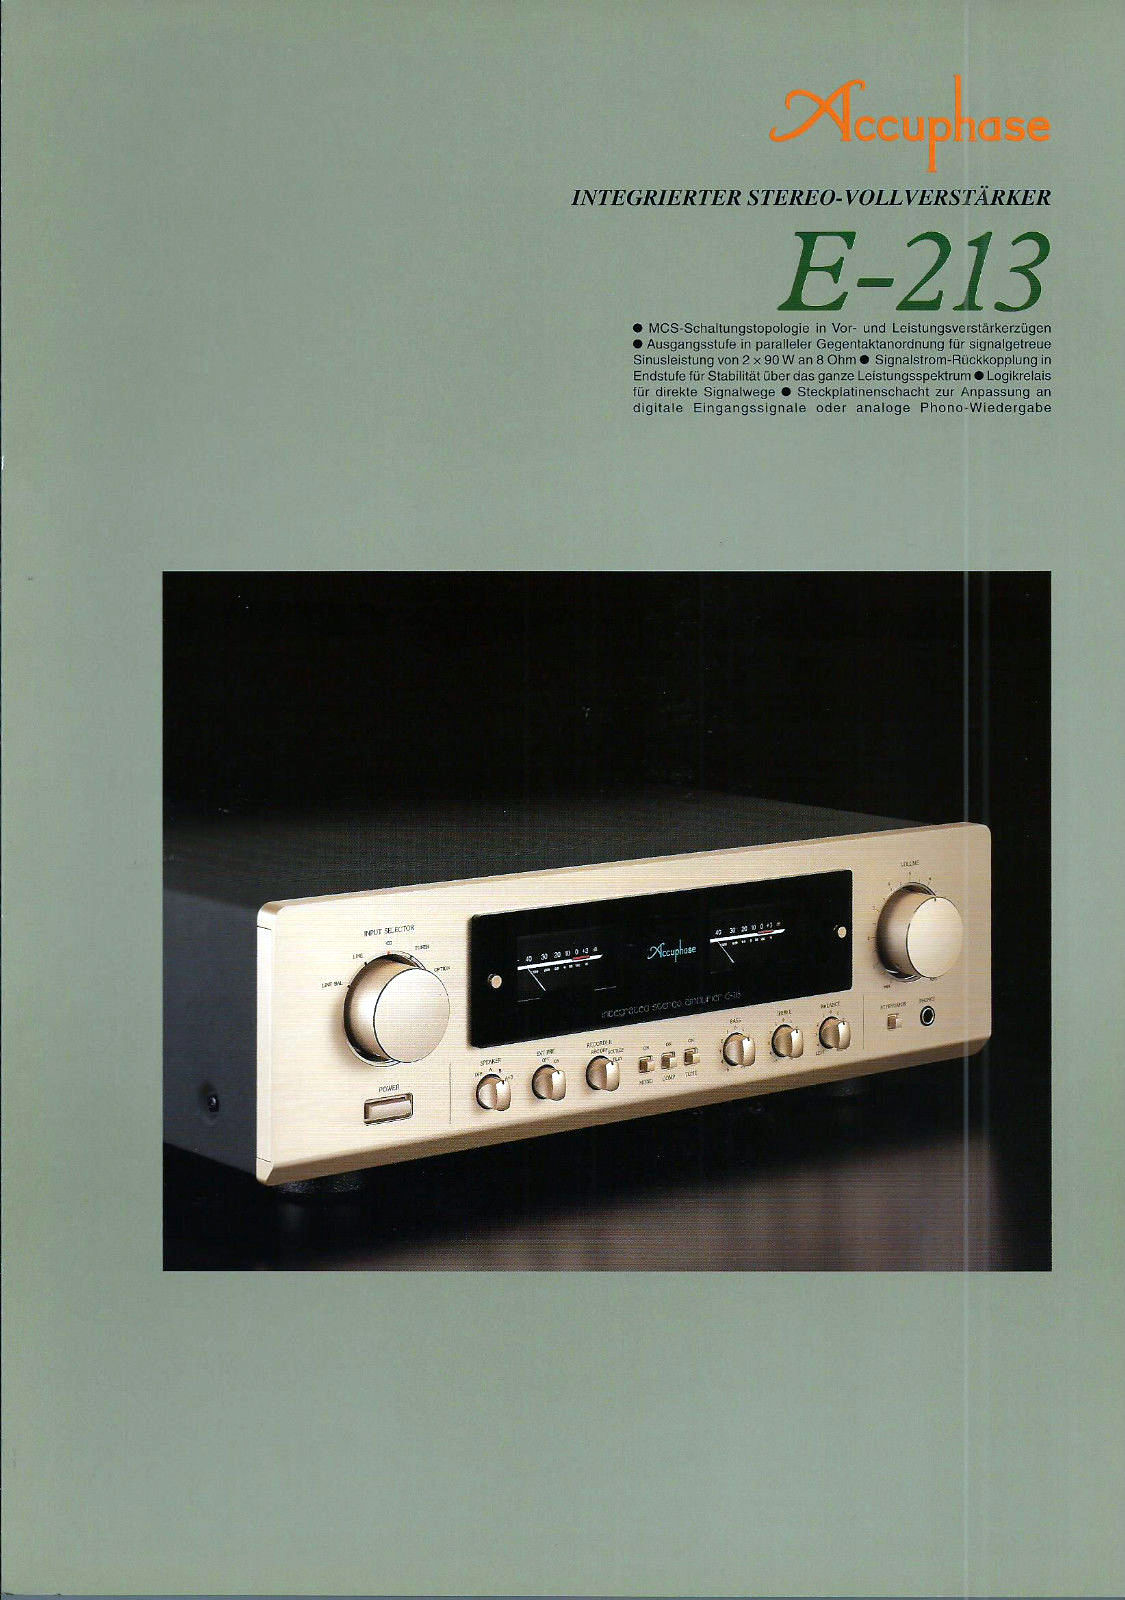 Accuphase E-213-Prospekt-1.jpg